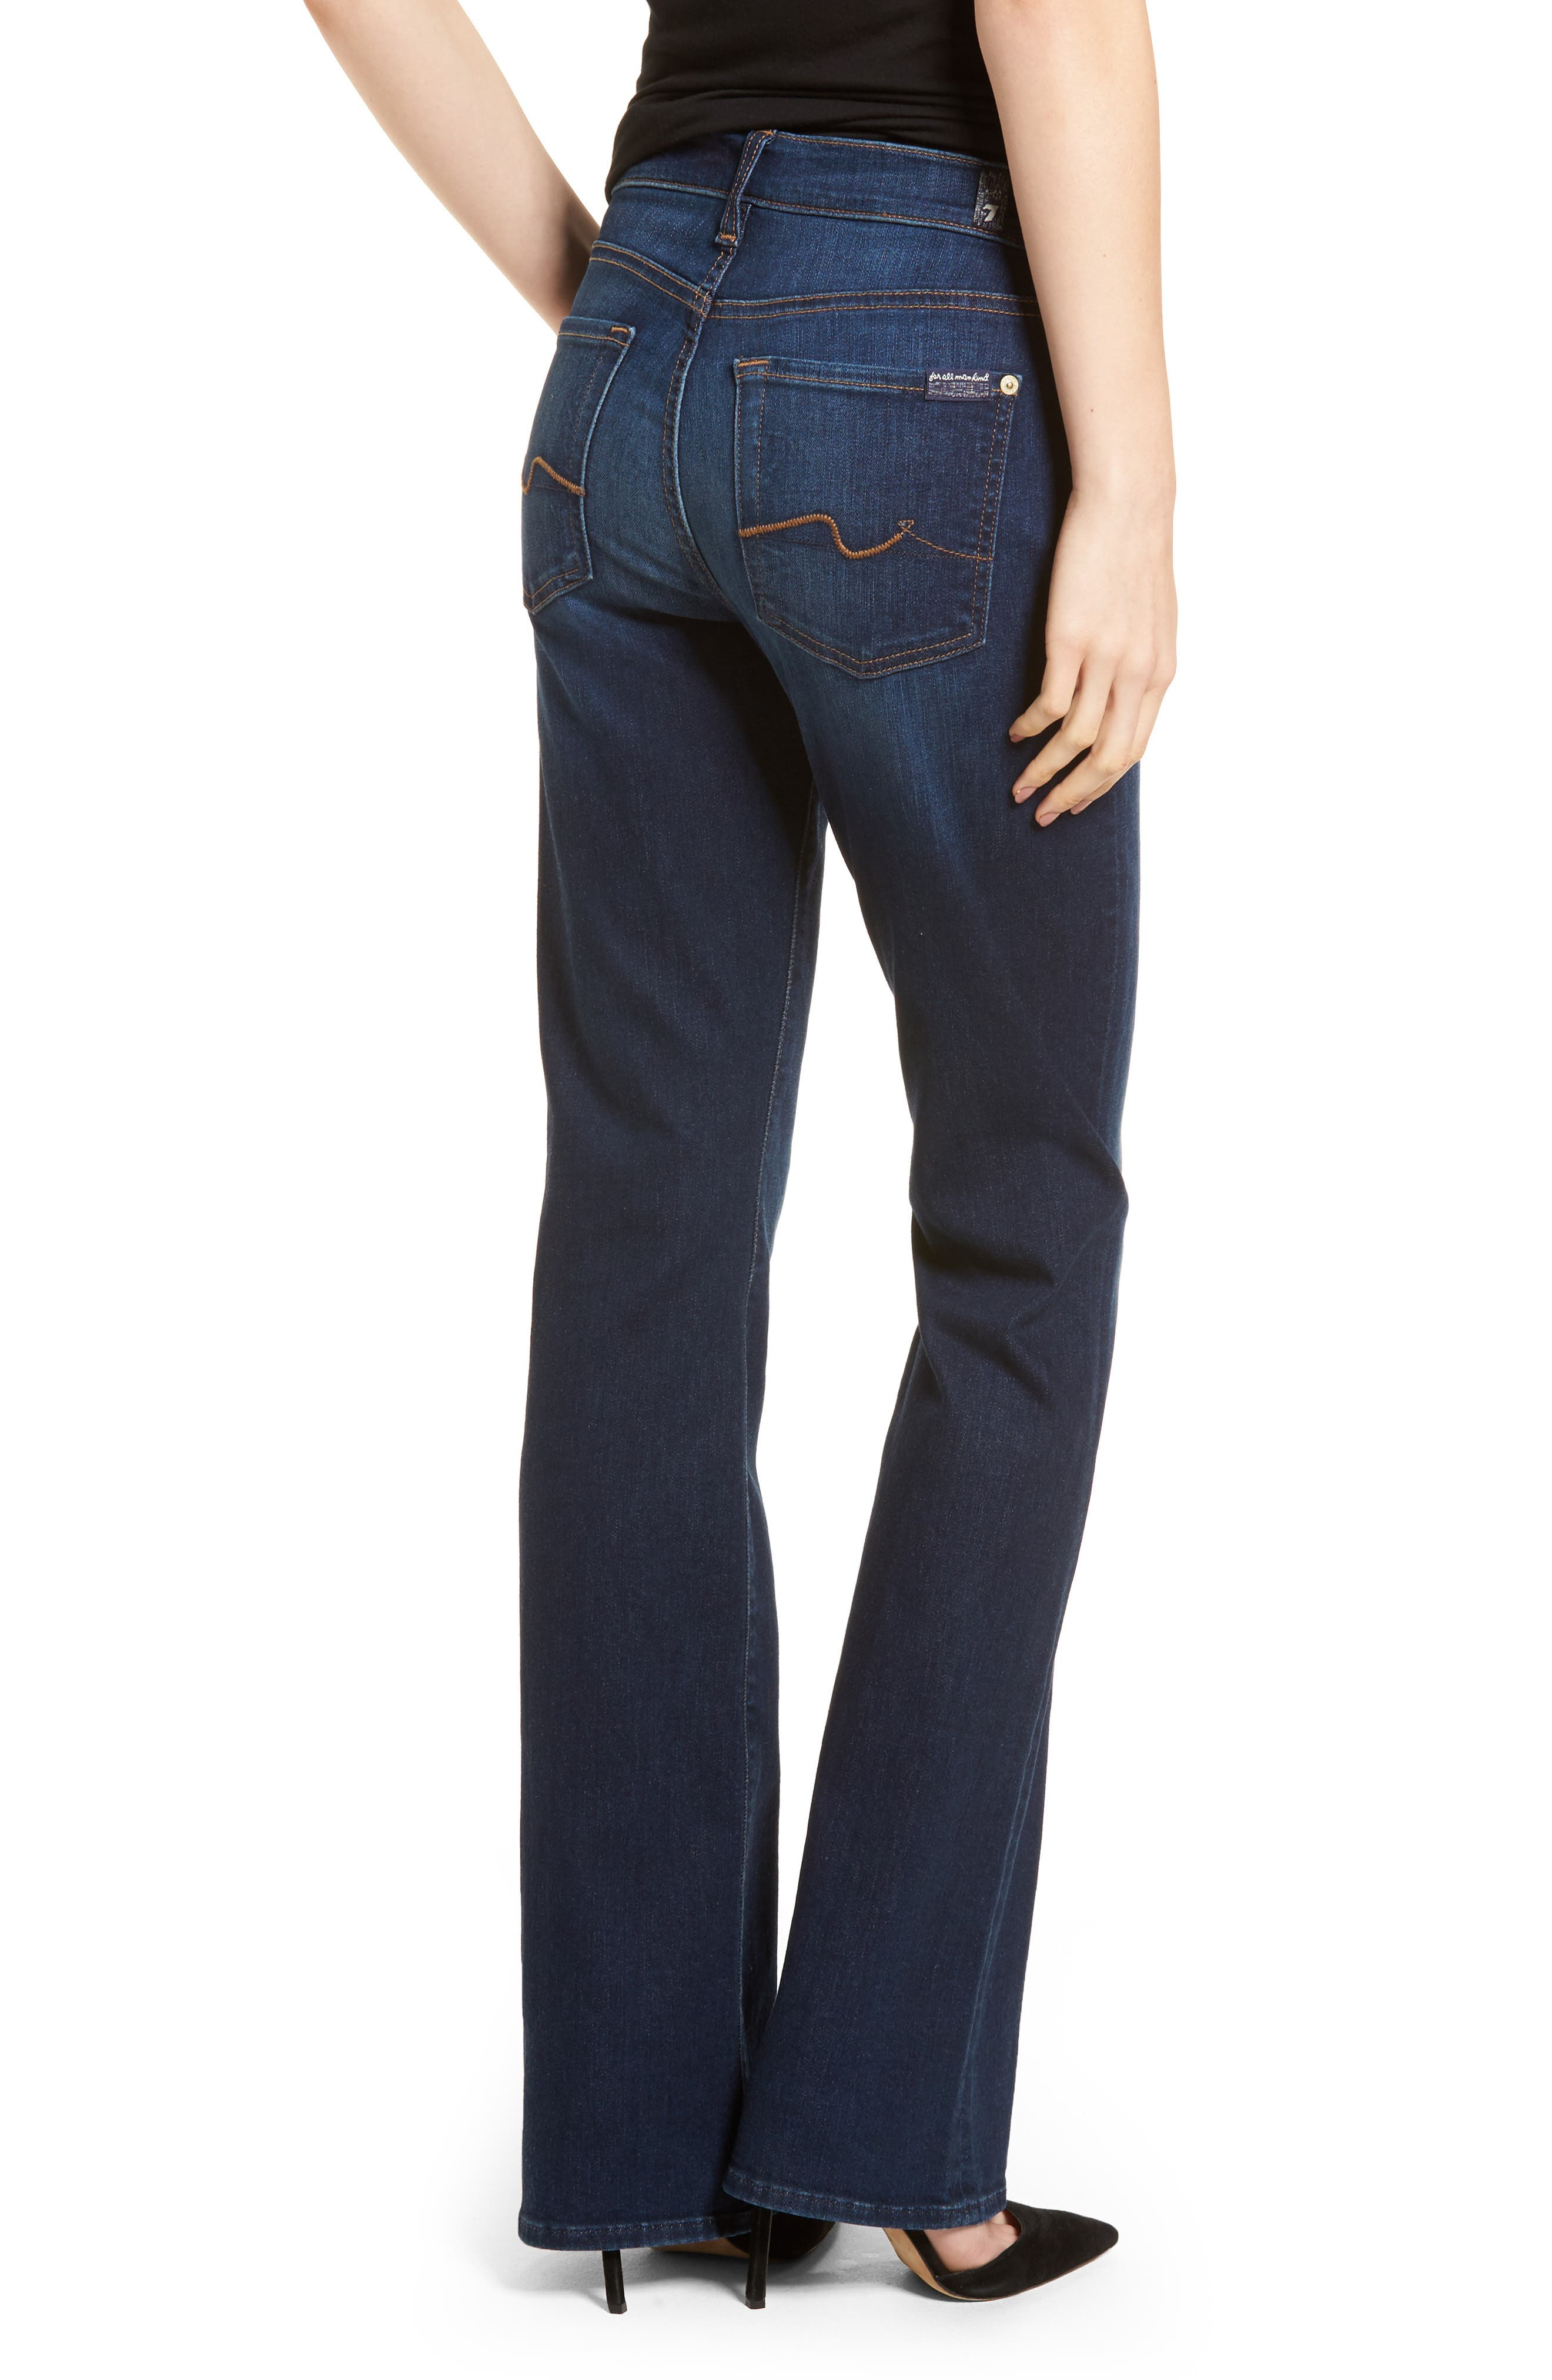 7 FOR ALL MANKIND<SUP>®</SUP>, b(air) Tailorless Iconic Bootcut Jeans, Alternate thumbnail 2, color, MORENO